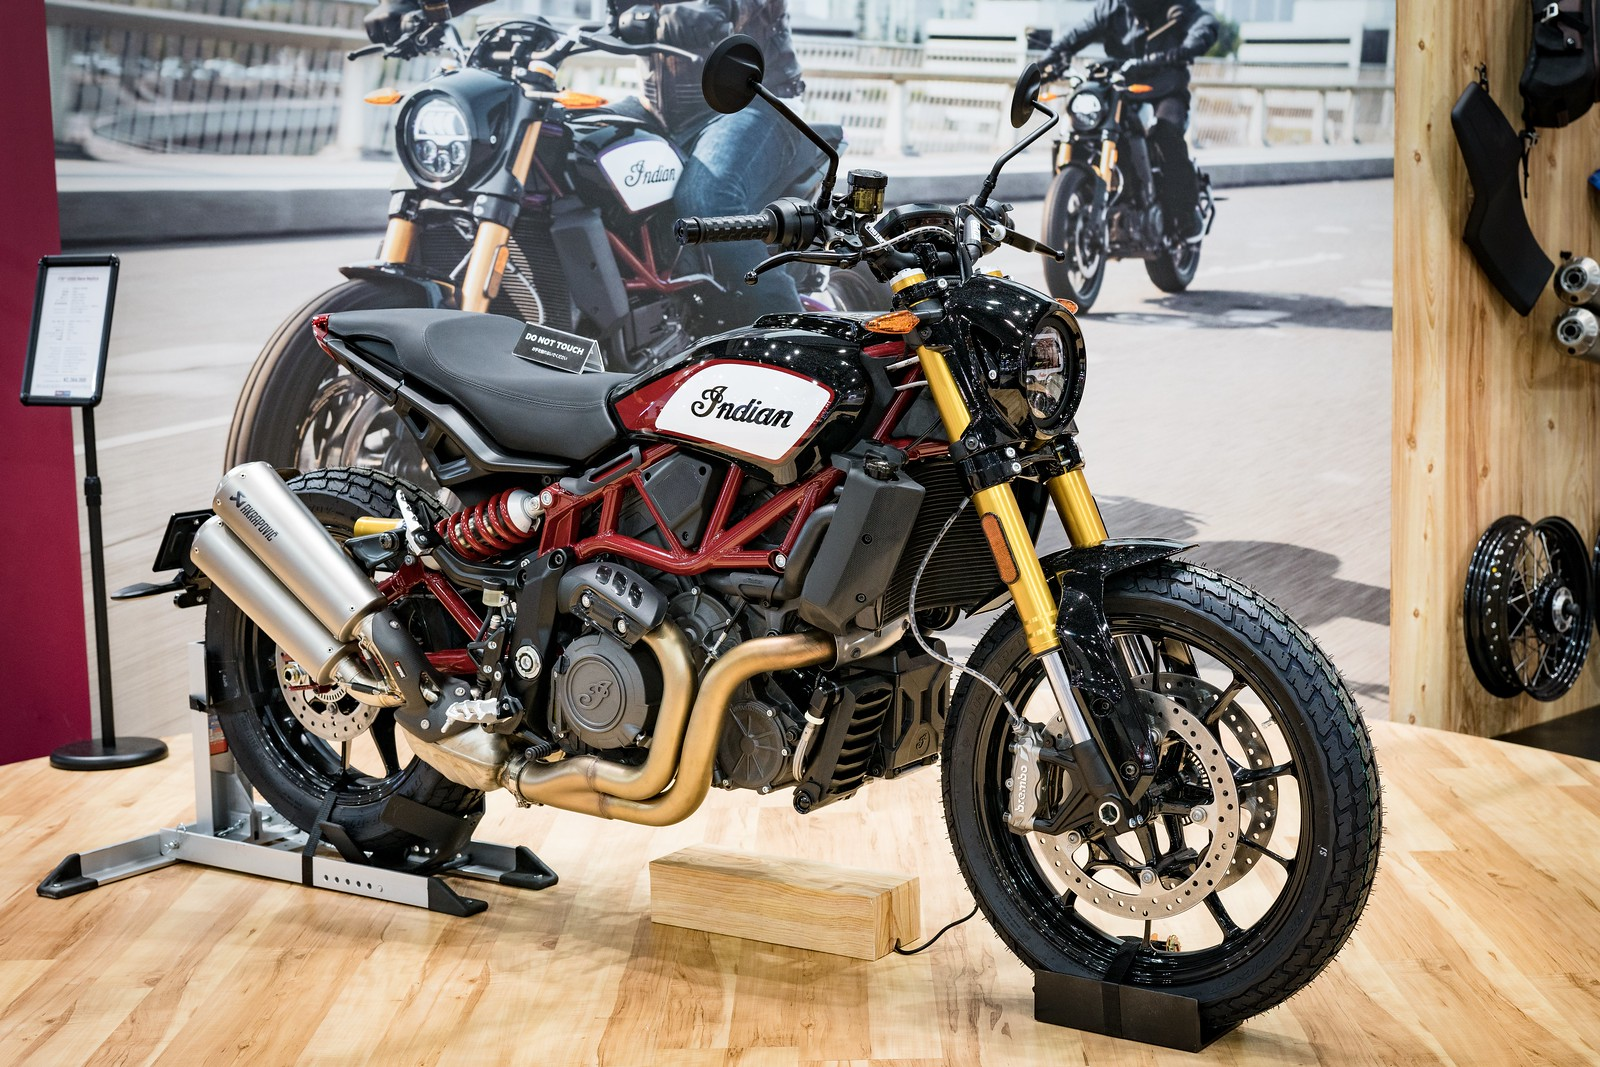 INDIAN - Tokyo MotorCycle Show 2019